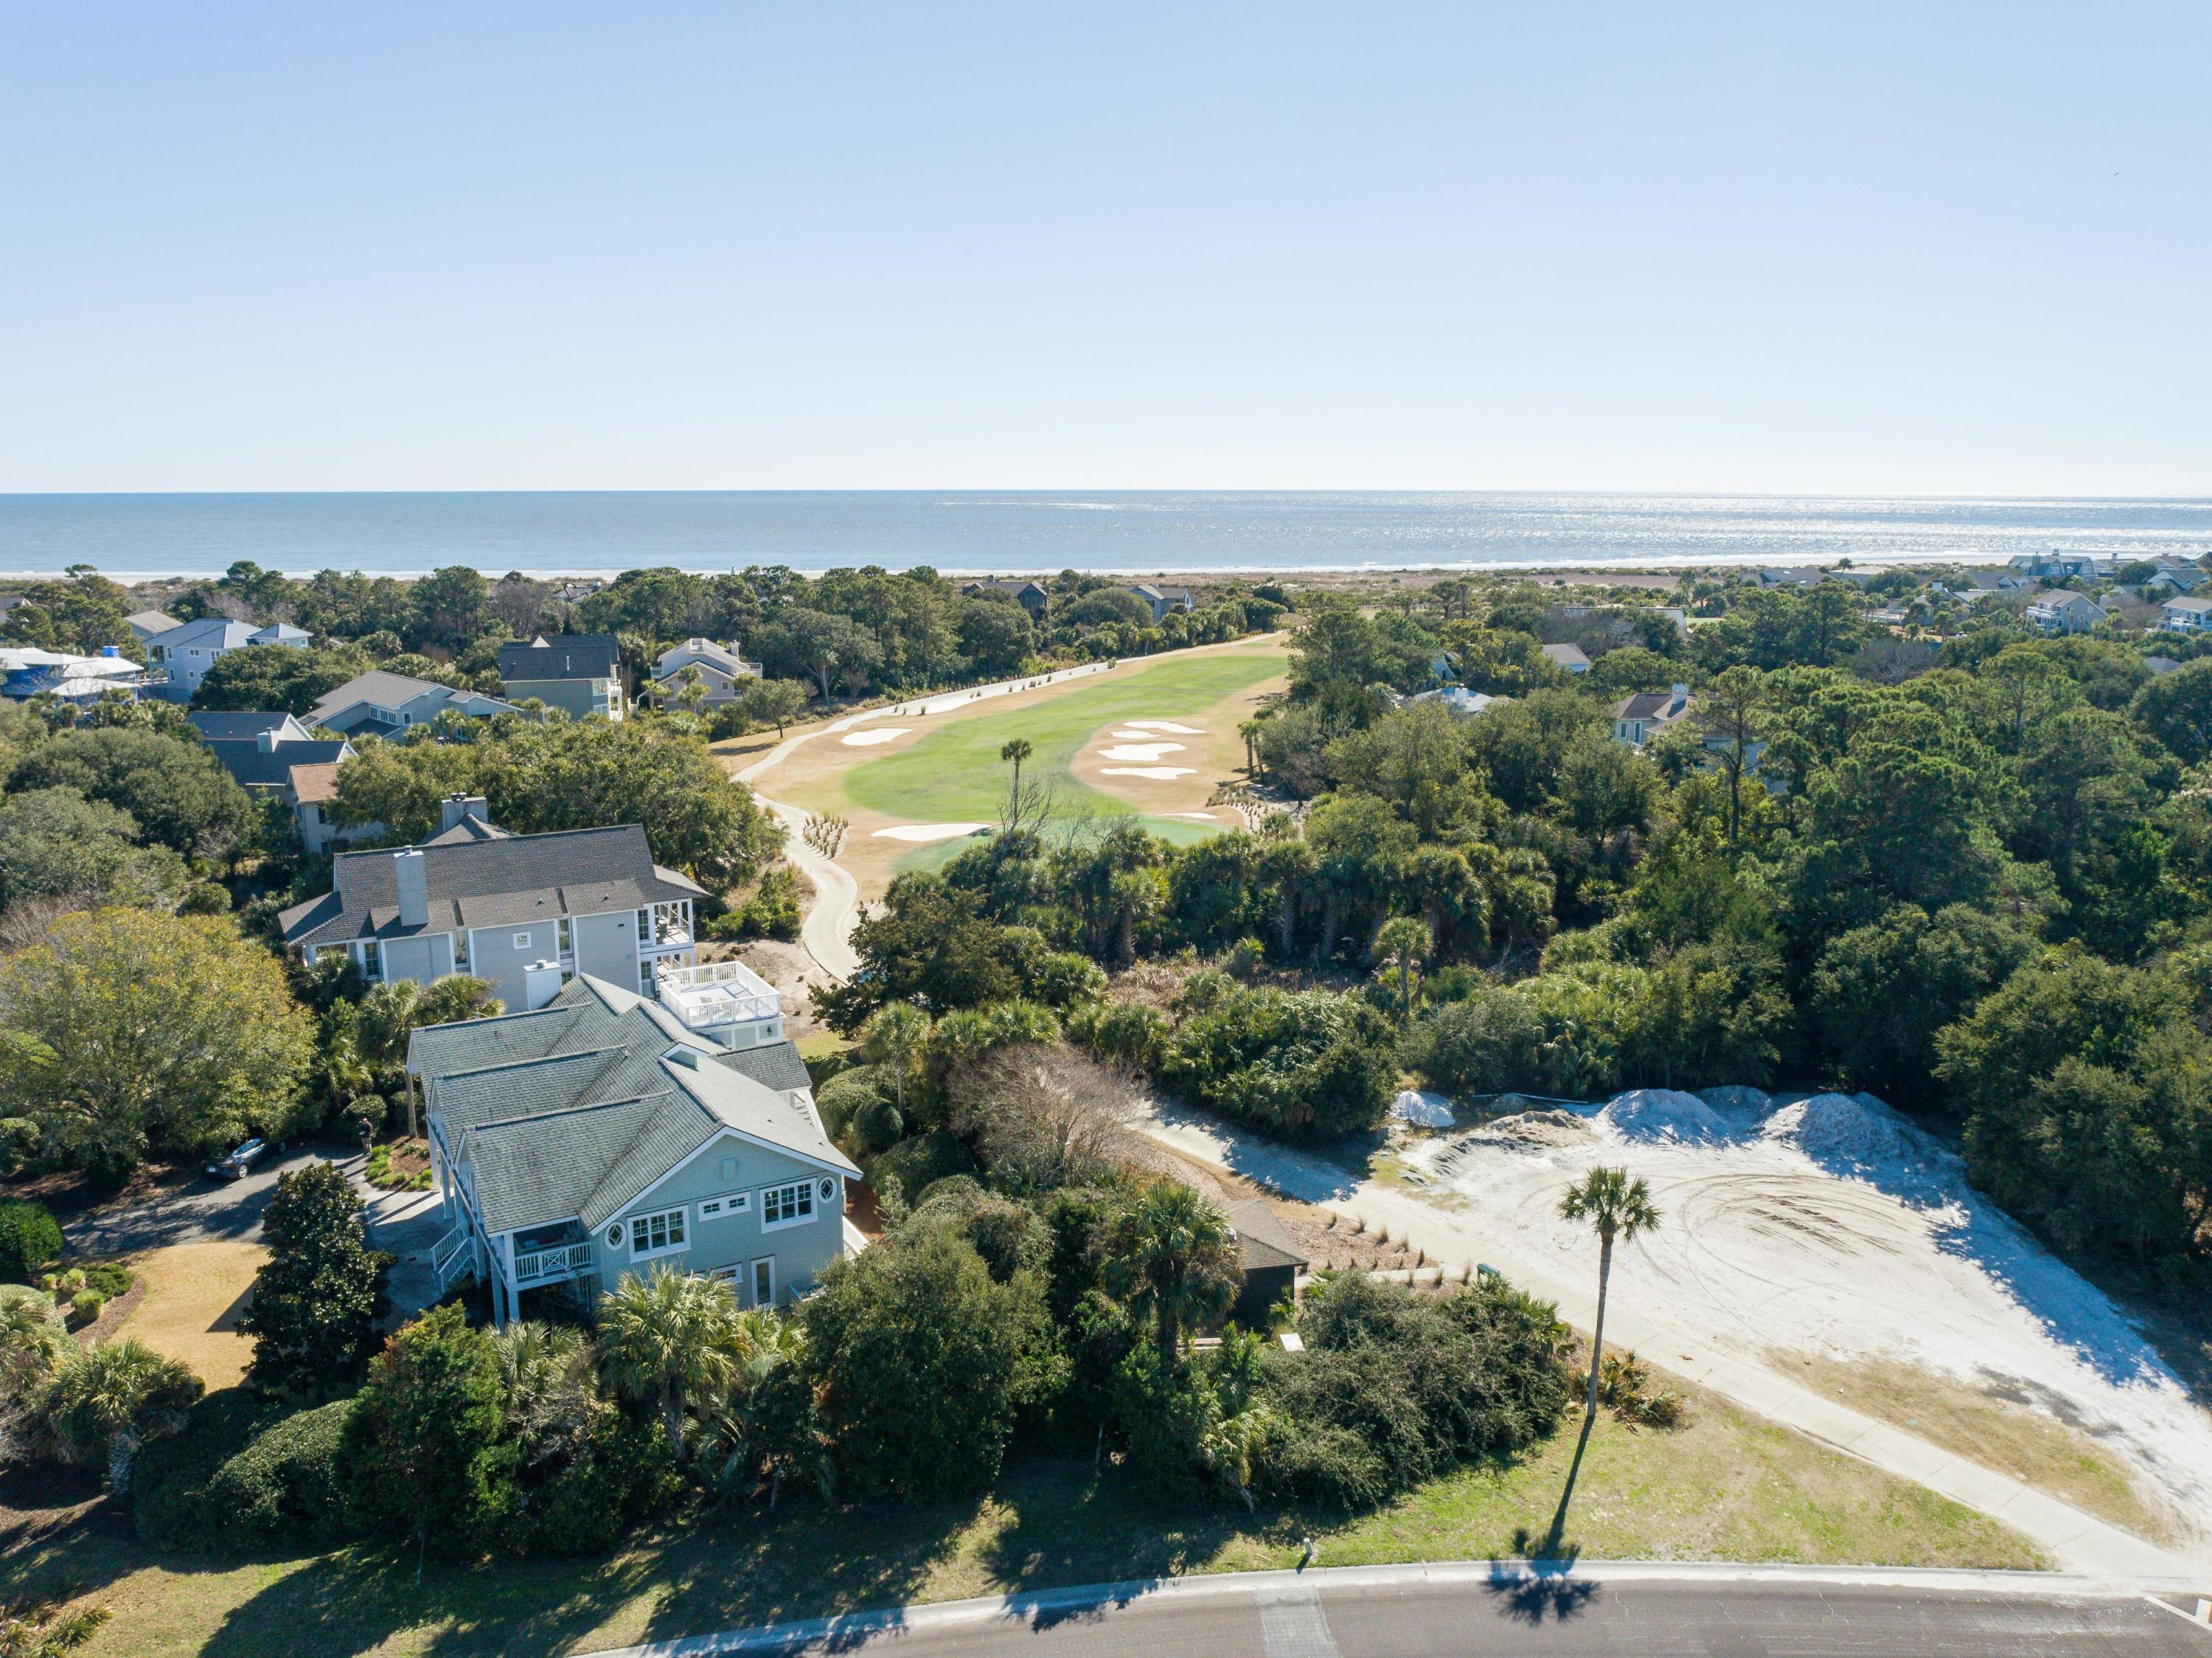 Seabrook Island Homes For Sale - 2335 Oyster Catcher, Seabrook Island, SC - 9